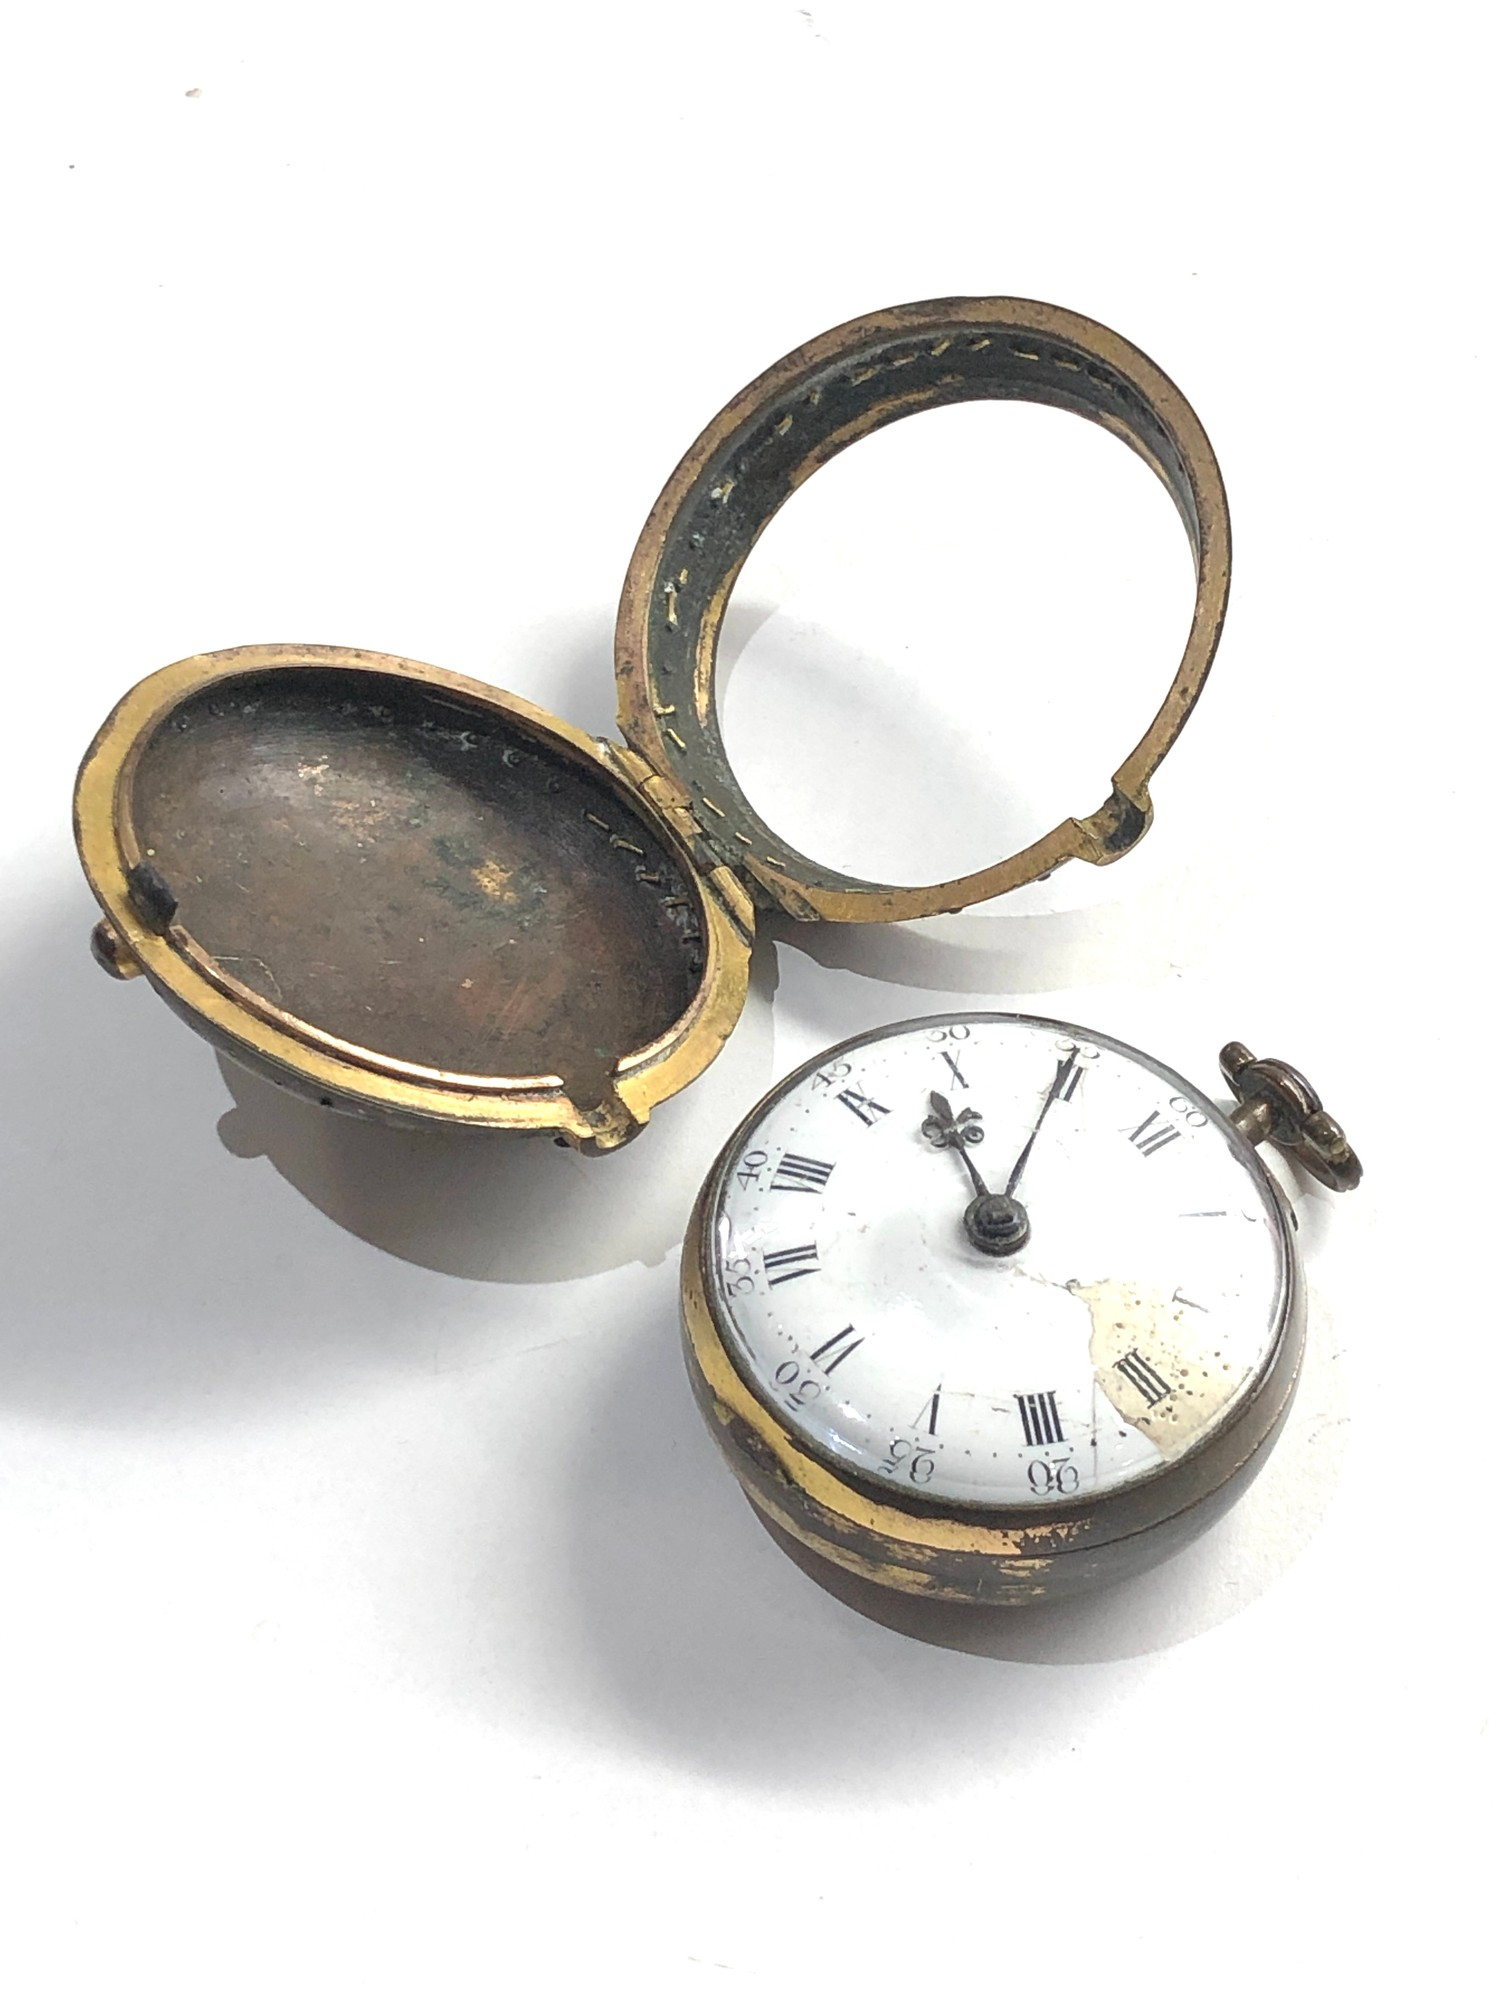 18th century London paircase verge pocket watch the watch does wind and tick dial damaged outer case - Image 6 of 9